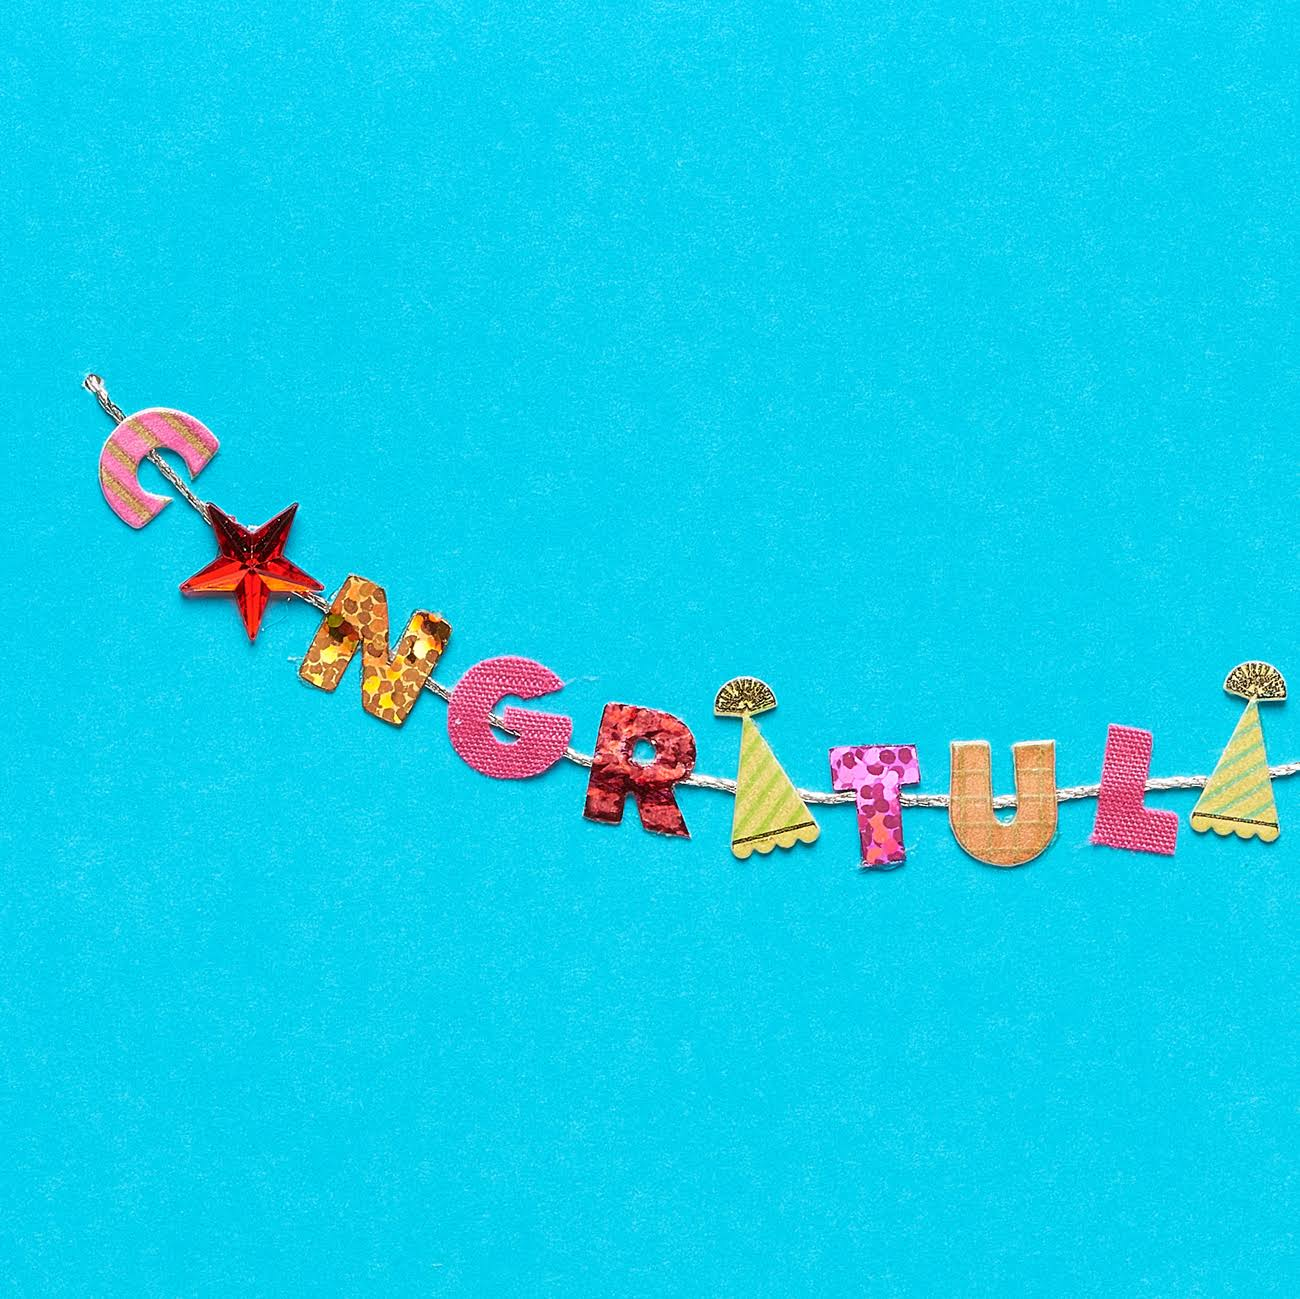 Papyrus Greeting Card, 3.75 inch x 7.75 inch, Festive Congratulations with Rhinestones